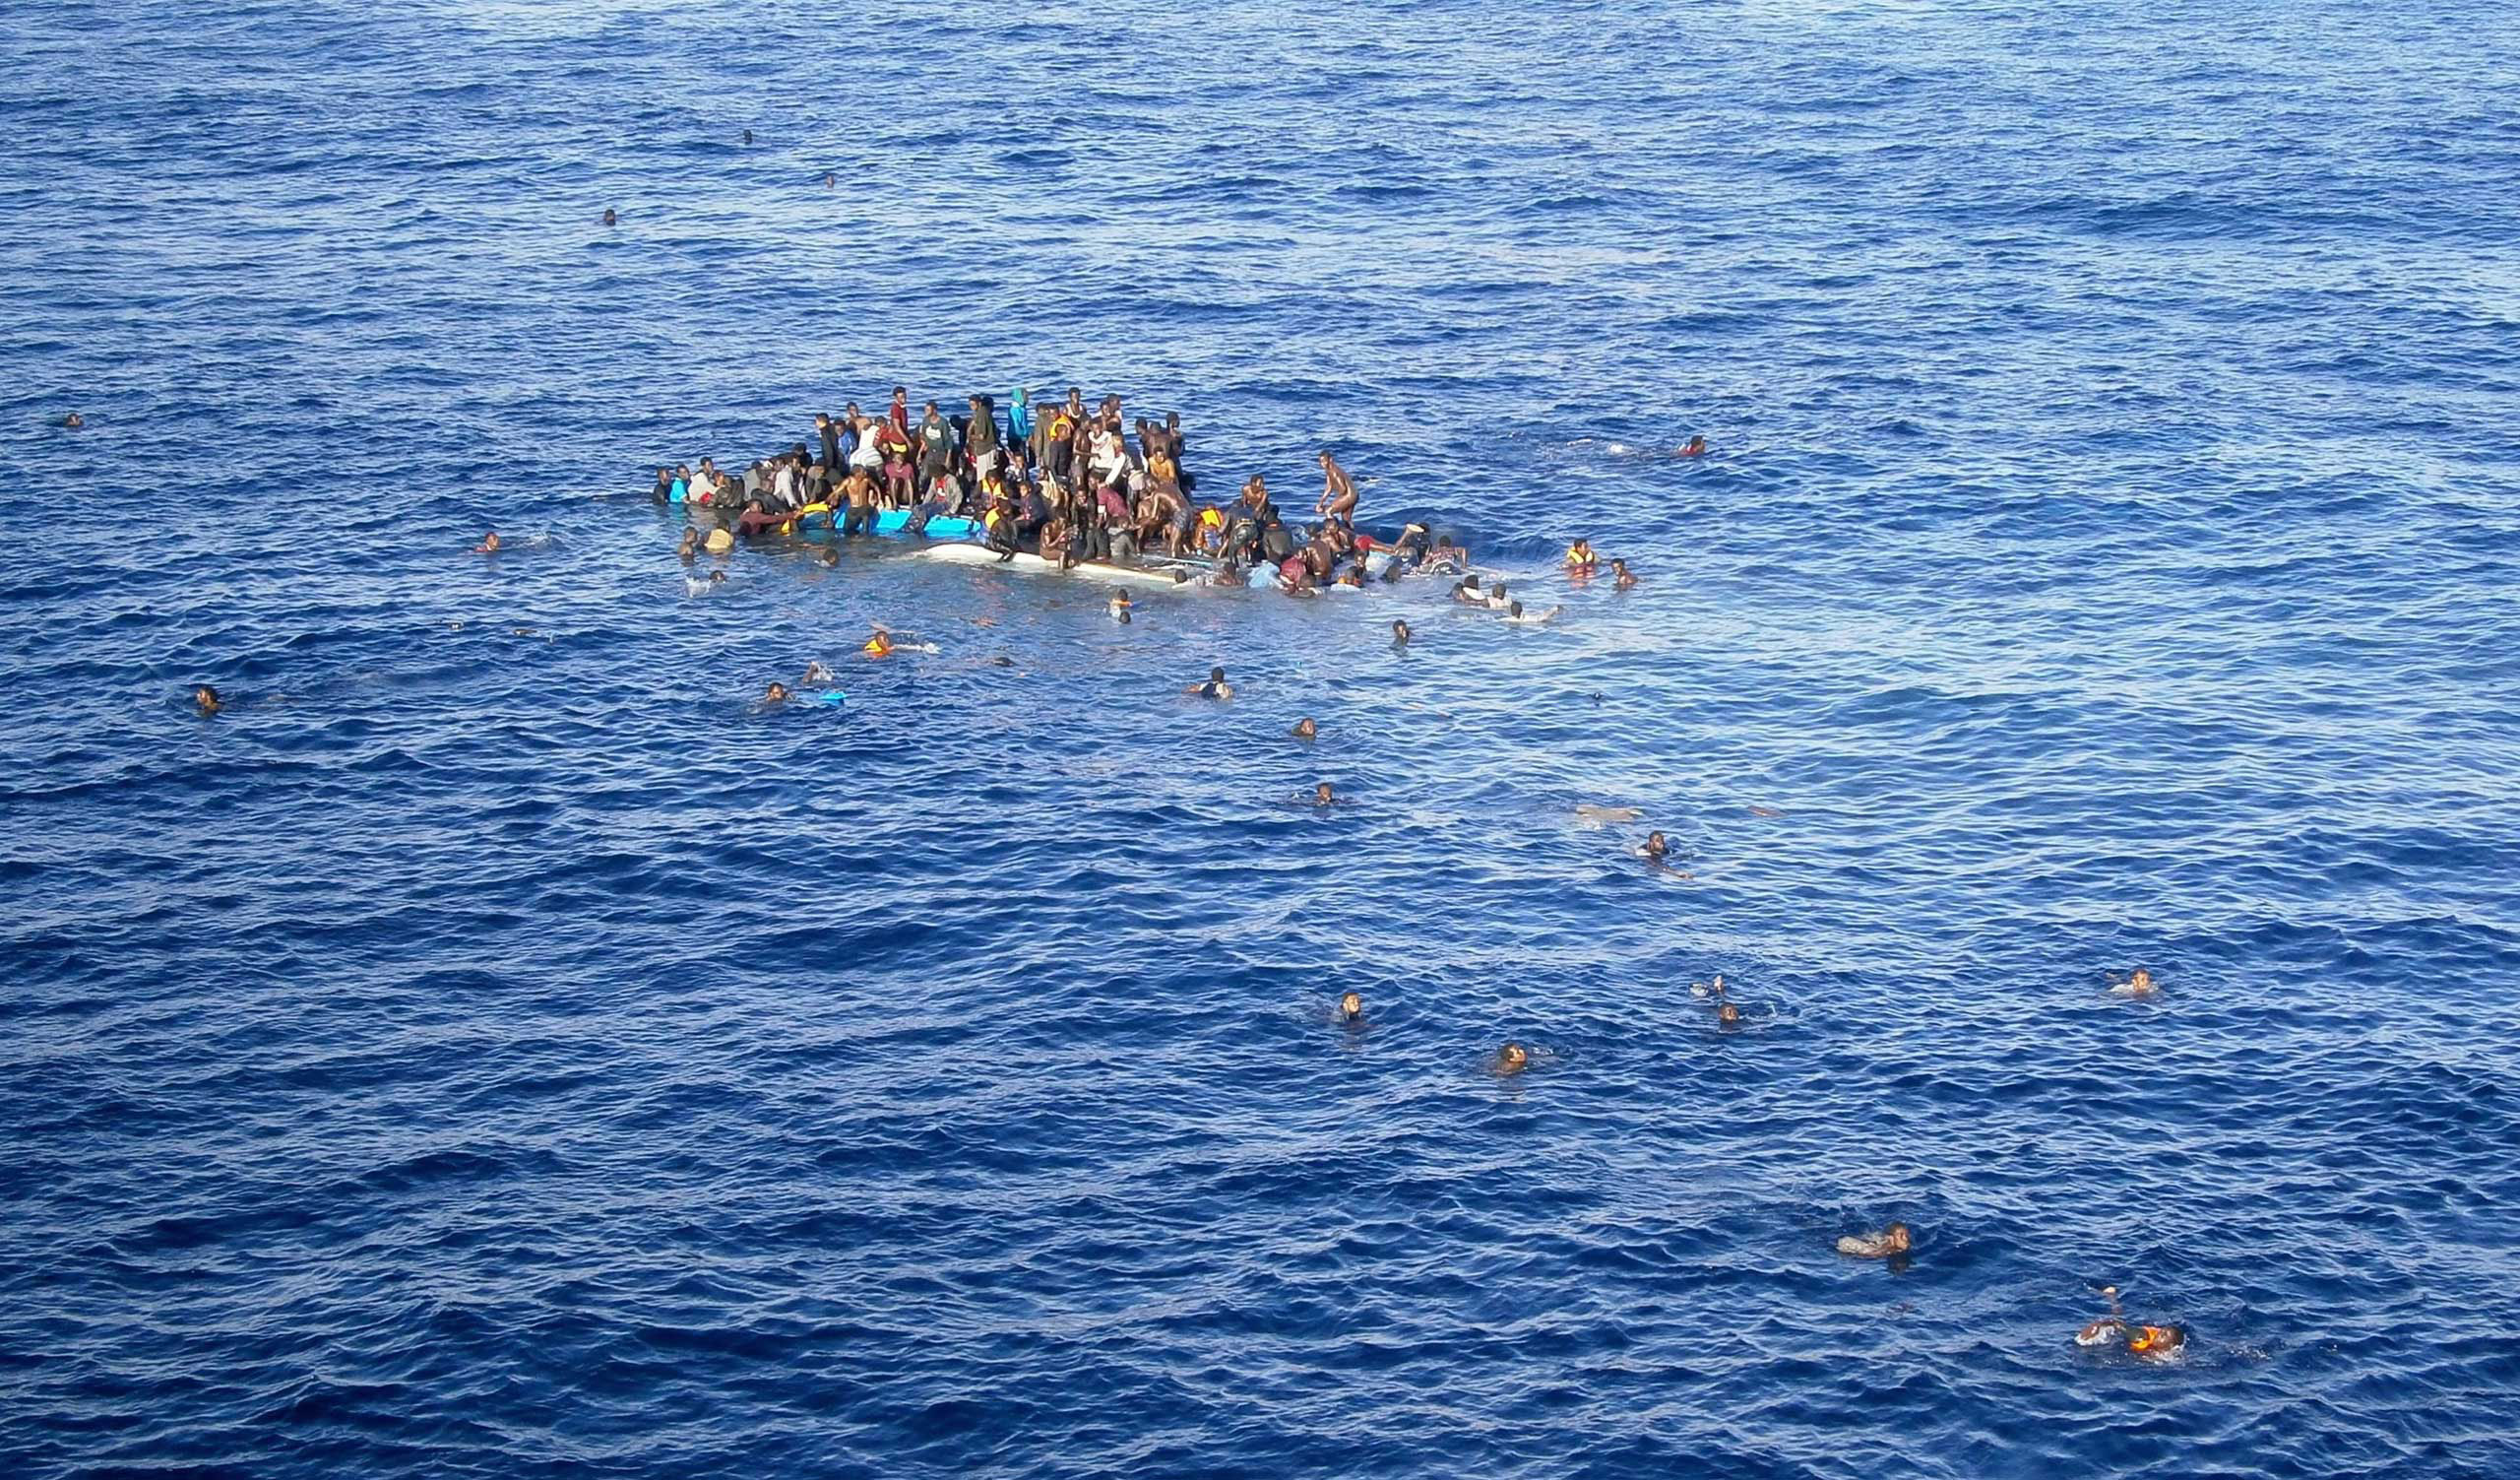 A boat with refugees in the Mediterranean Sea. April 12, 2015.